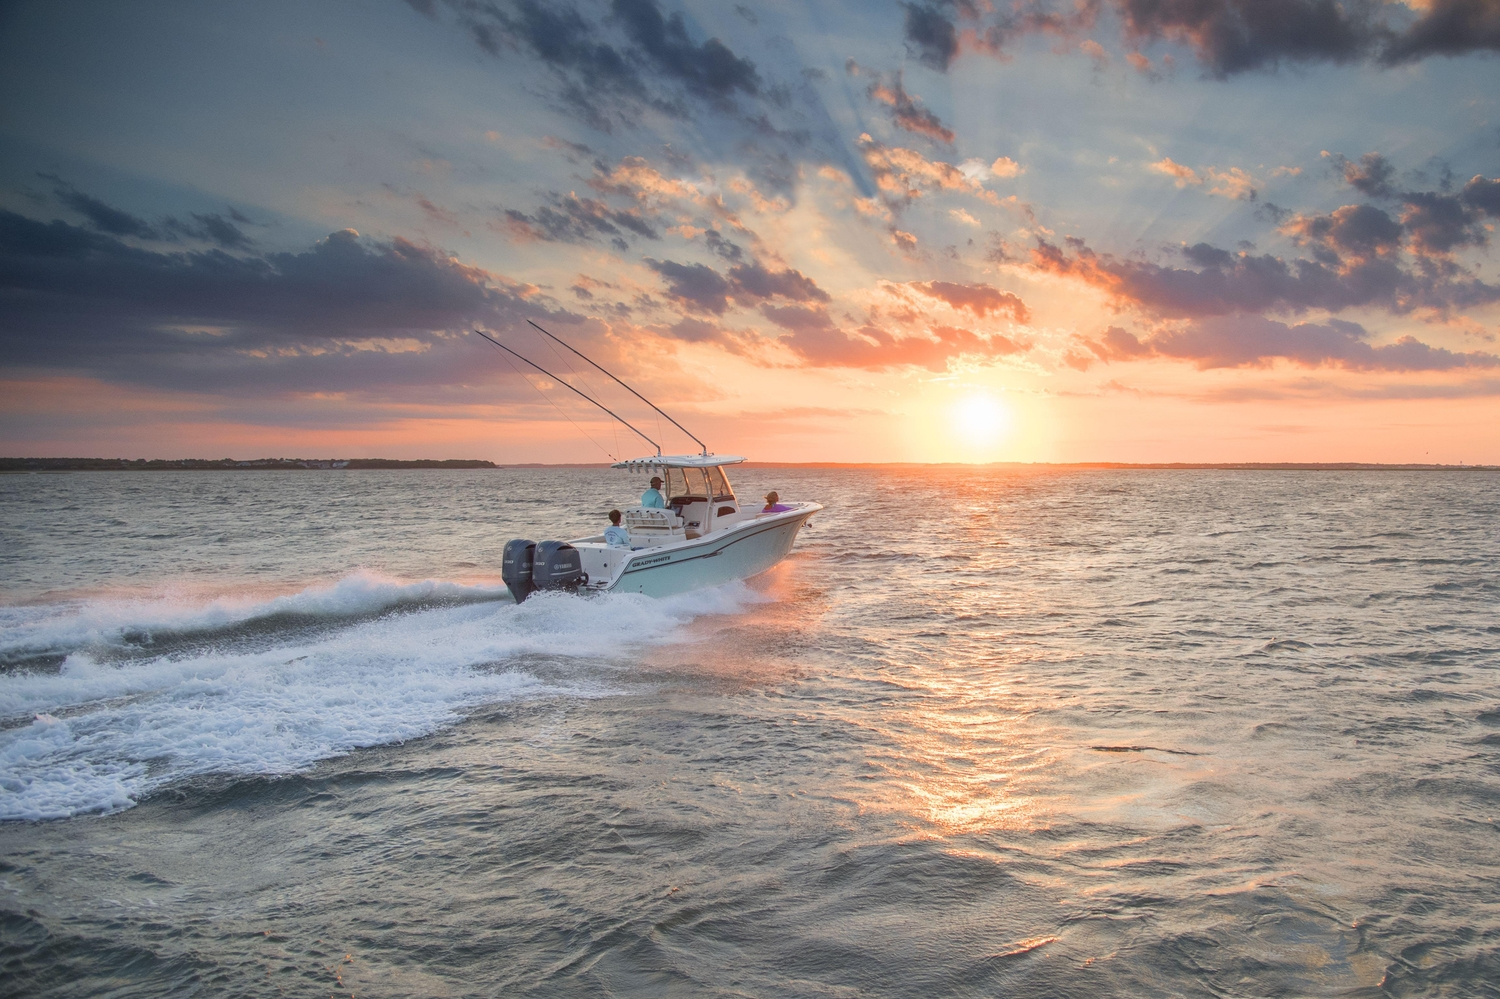 Fishing boat cruising out to sea during sunrise